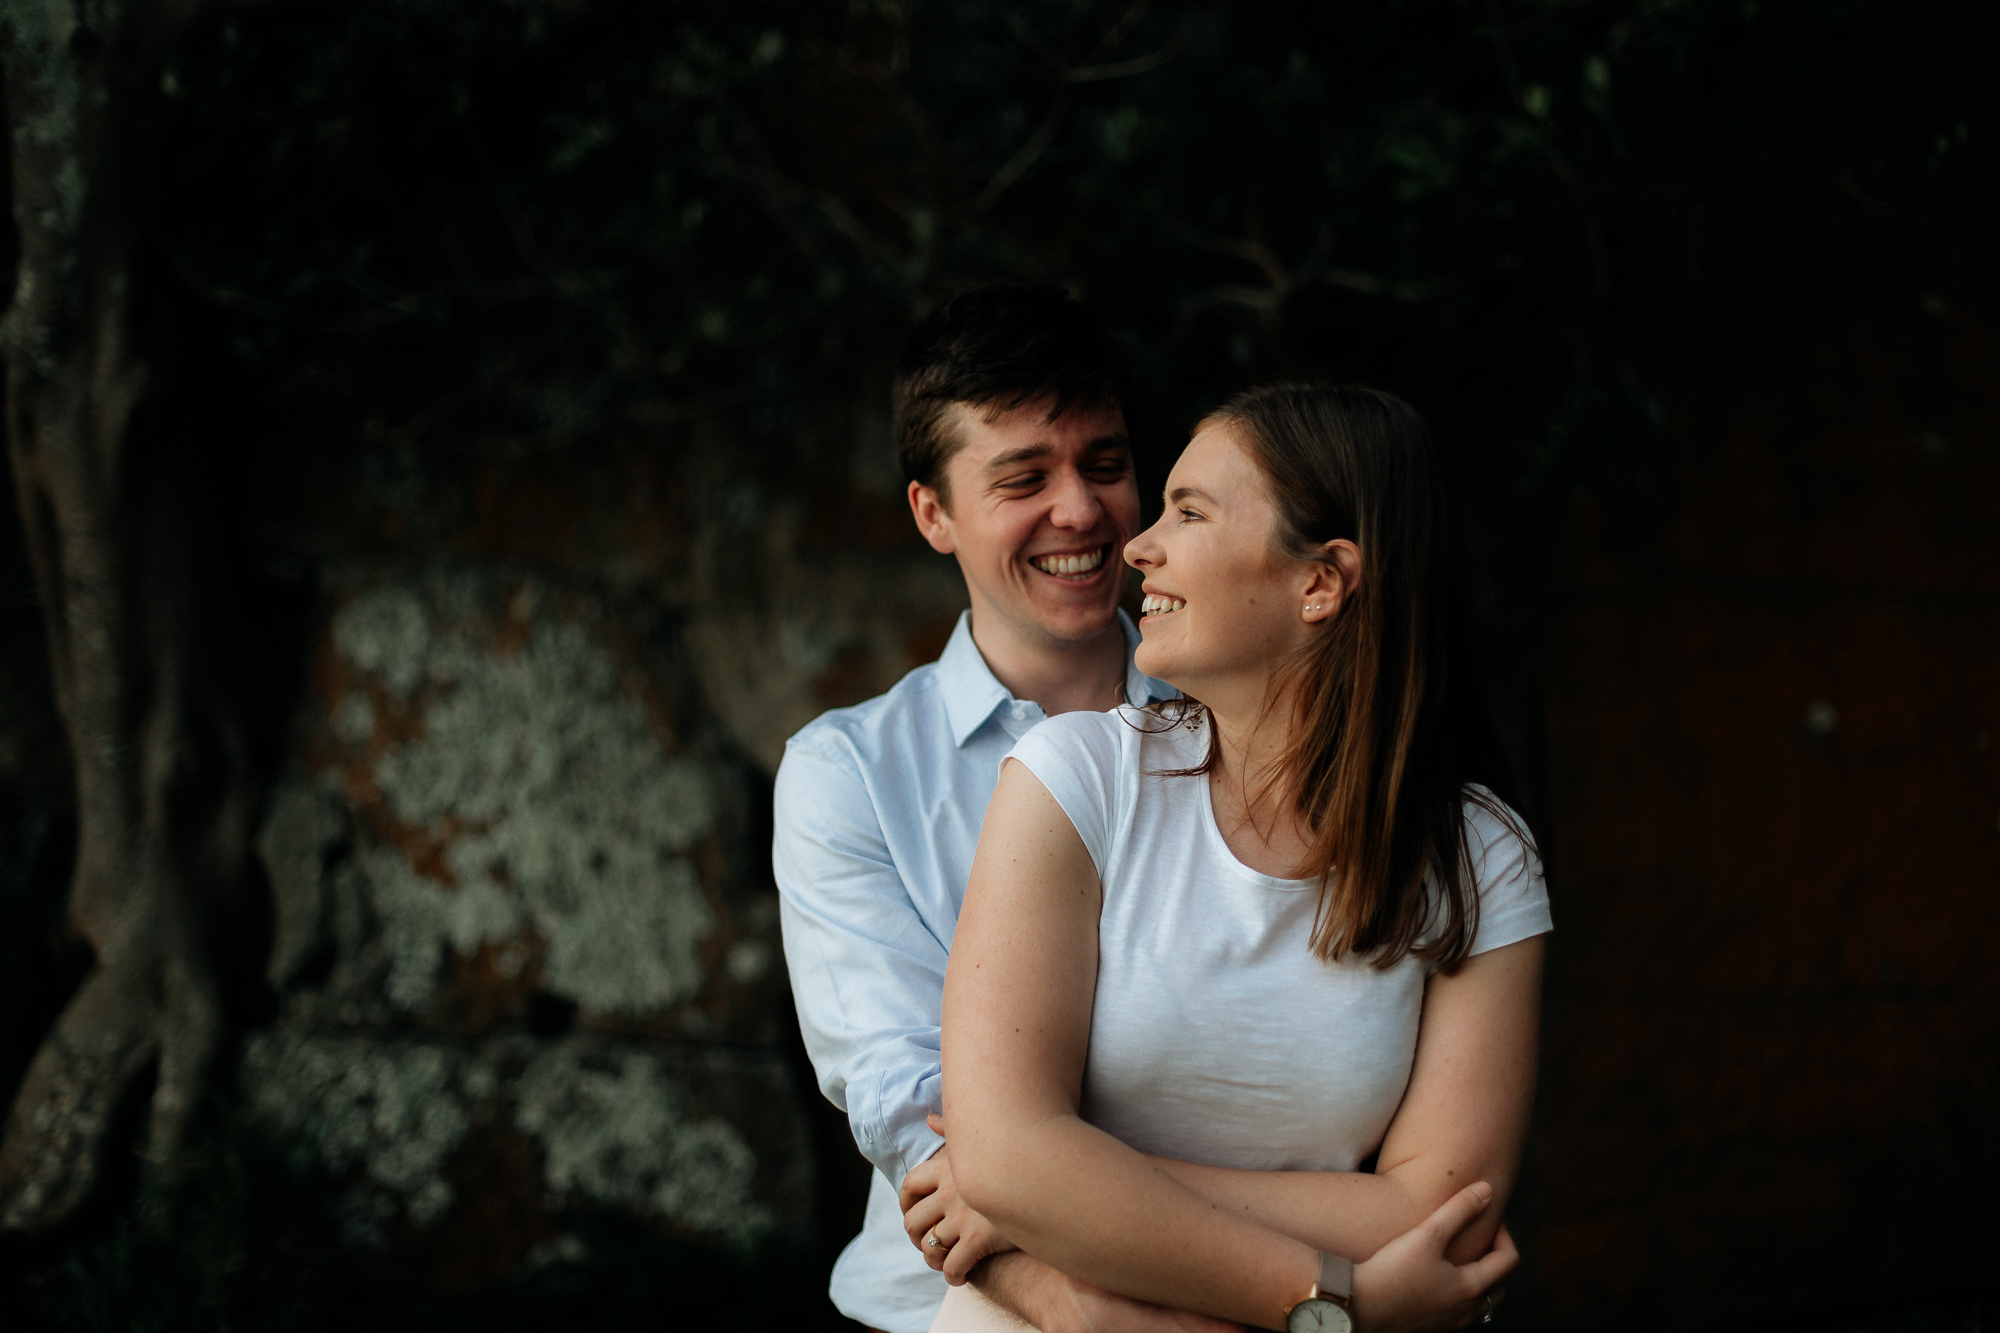 Amanzi and Steven_Engagement_Sydney_Holly Medway Photography-37.JPG